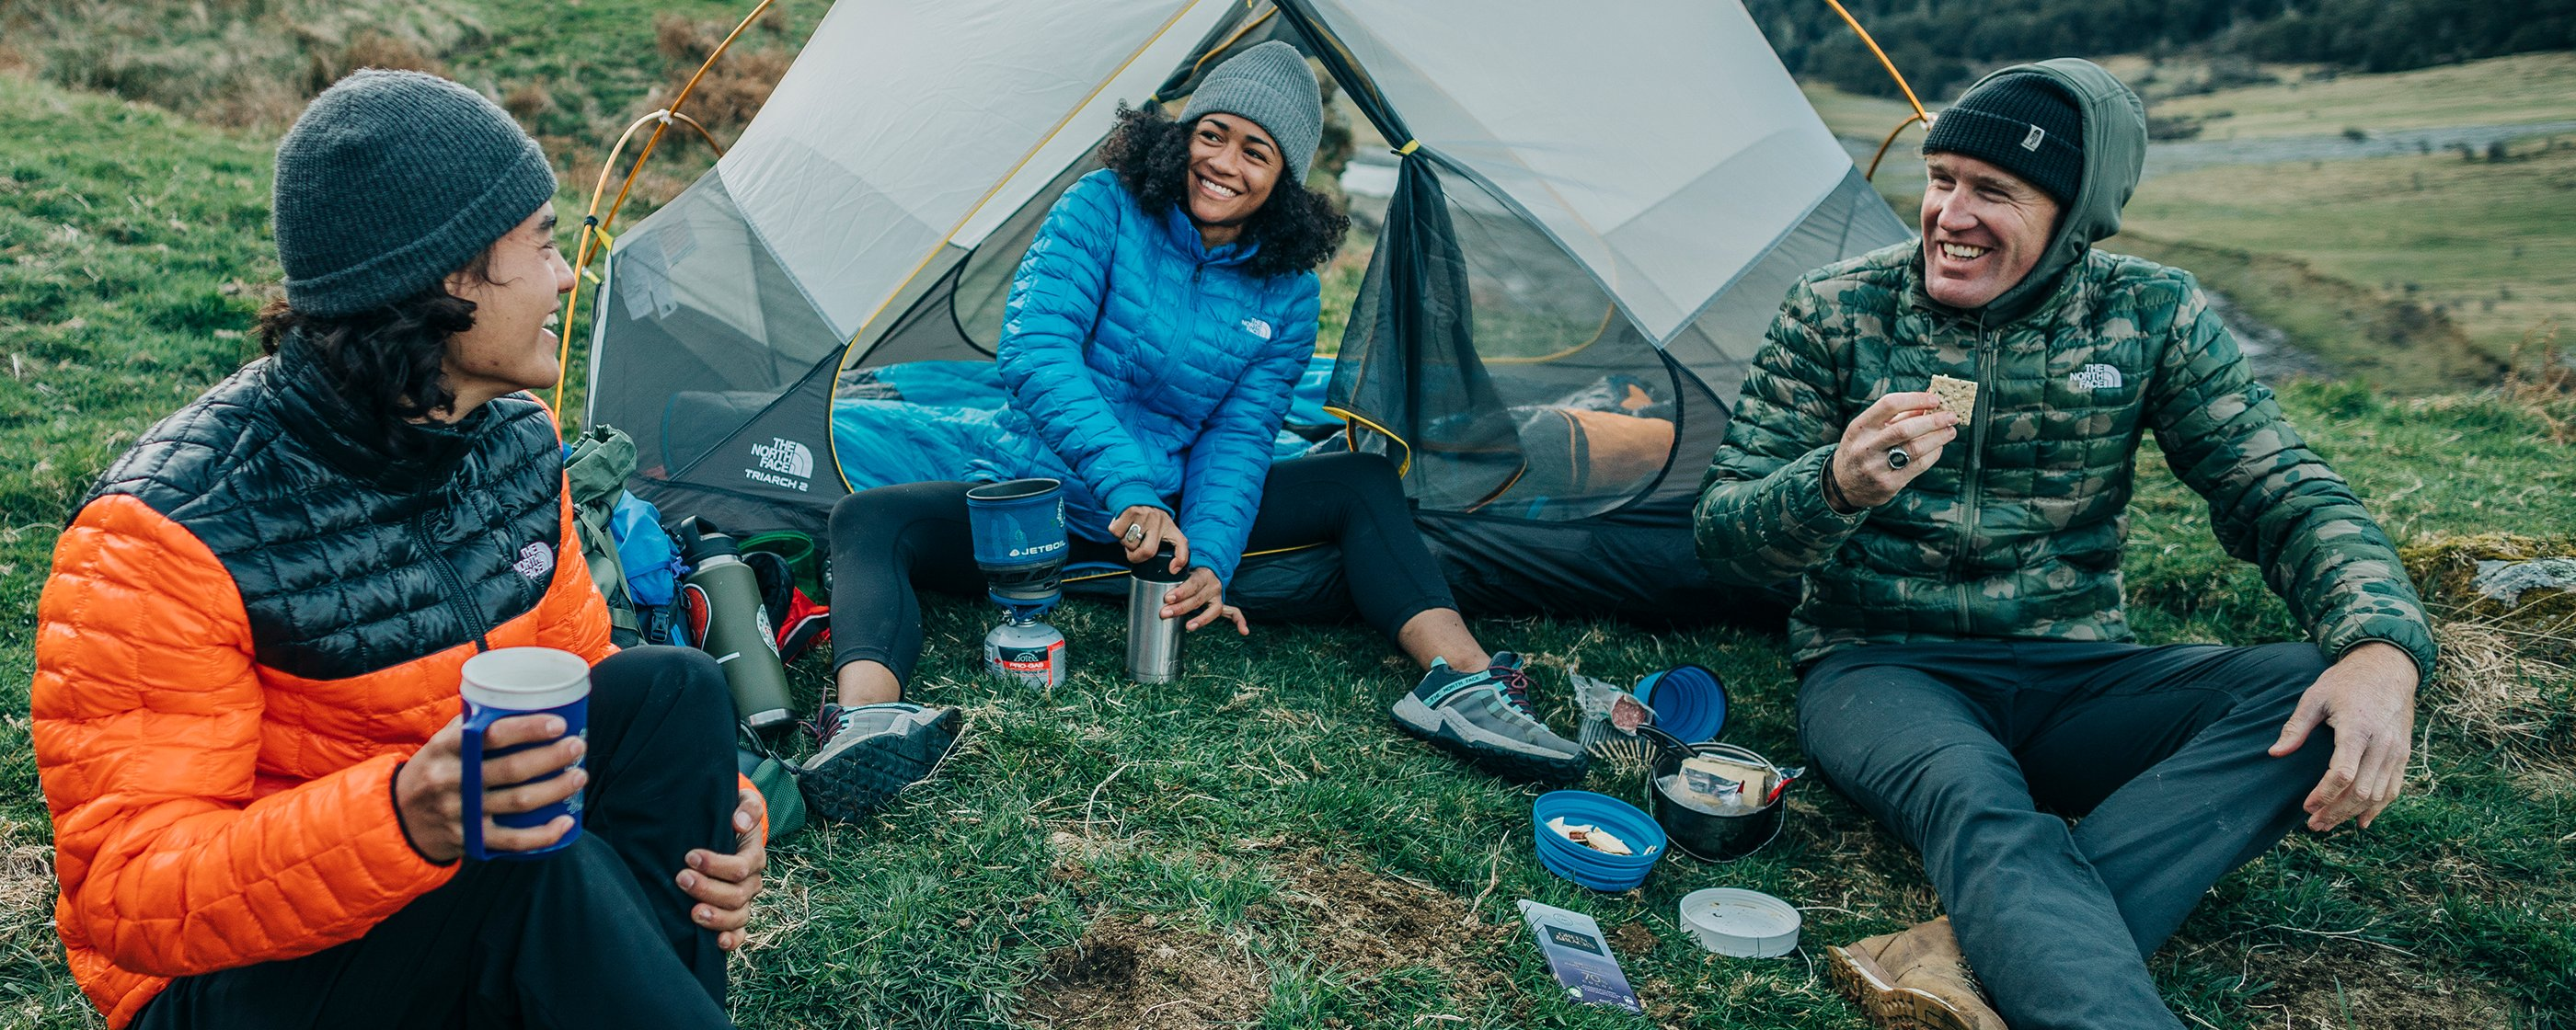 A group of people camping outdoors sit on the ground, enjoying snacks and coffee together.